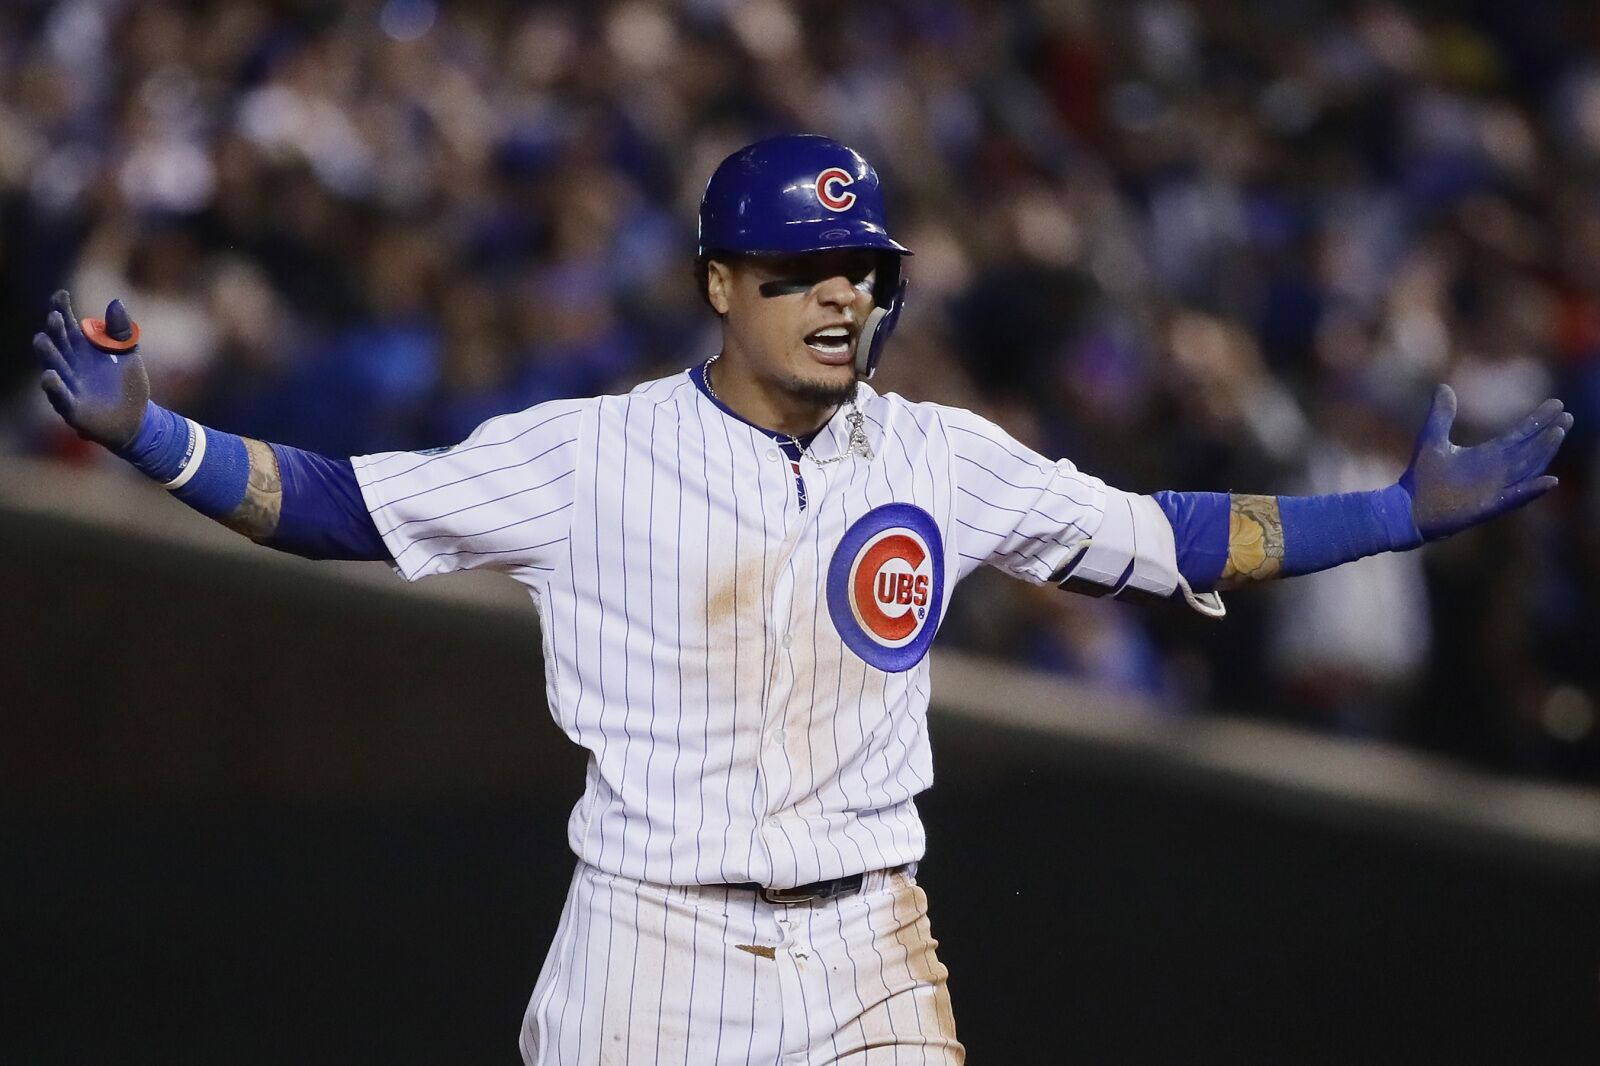 Chicago Cubs: Javier Baez, Kris Bryant, and five others avoid arbitration